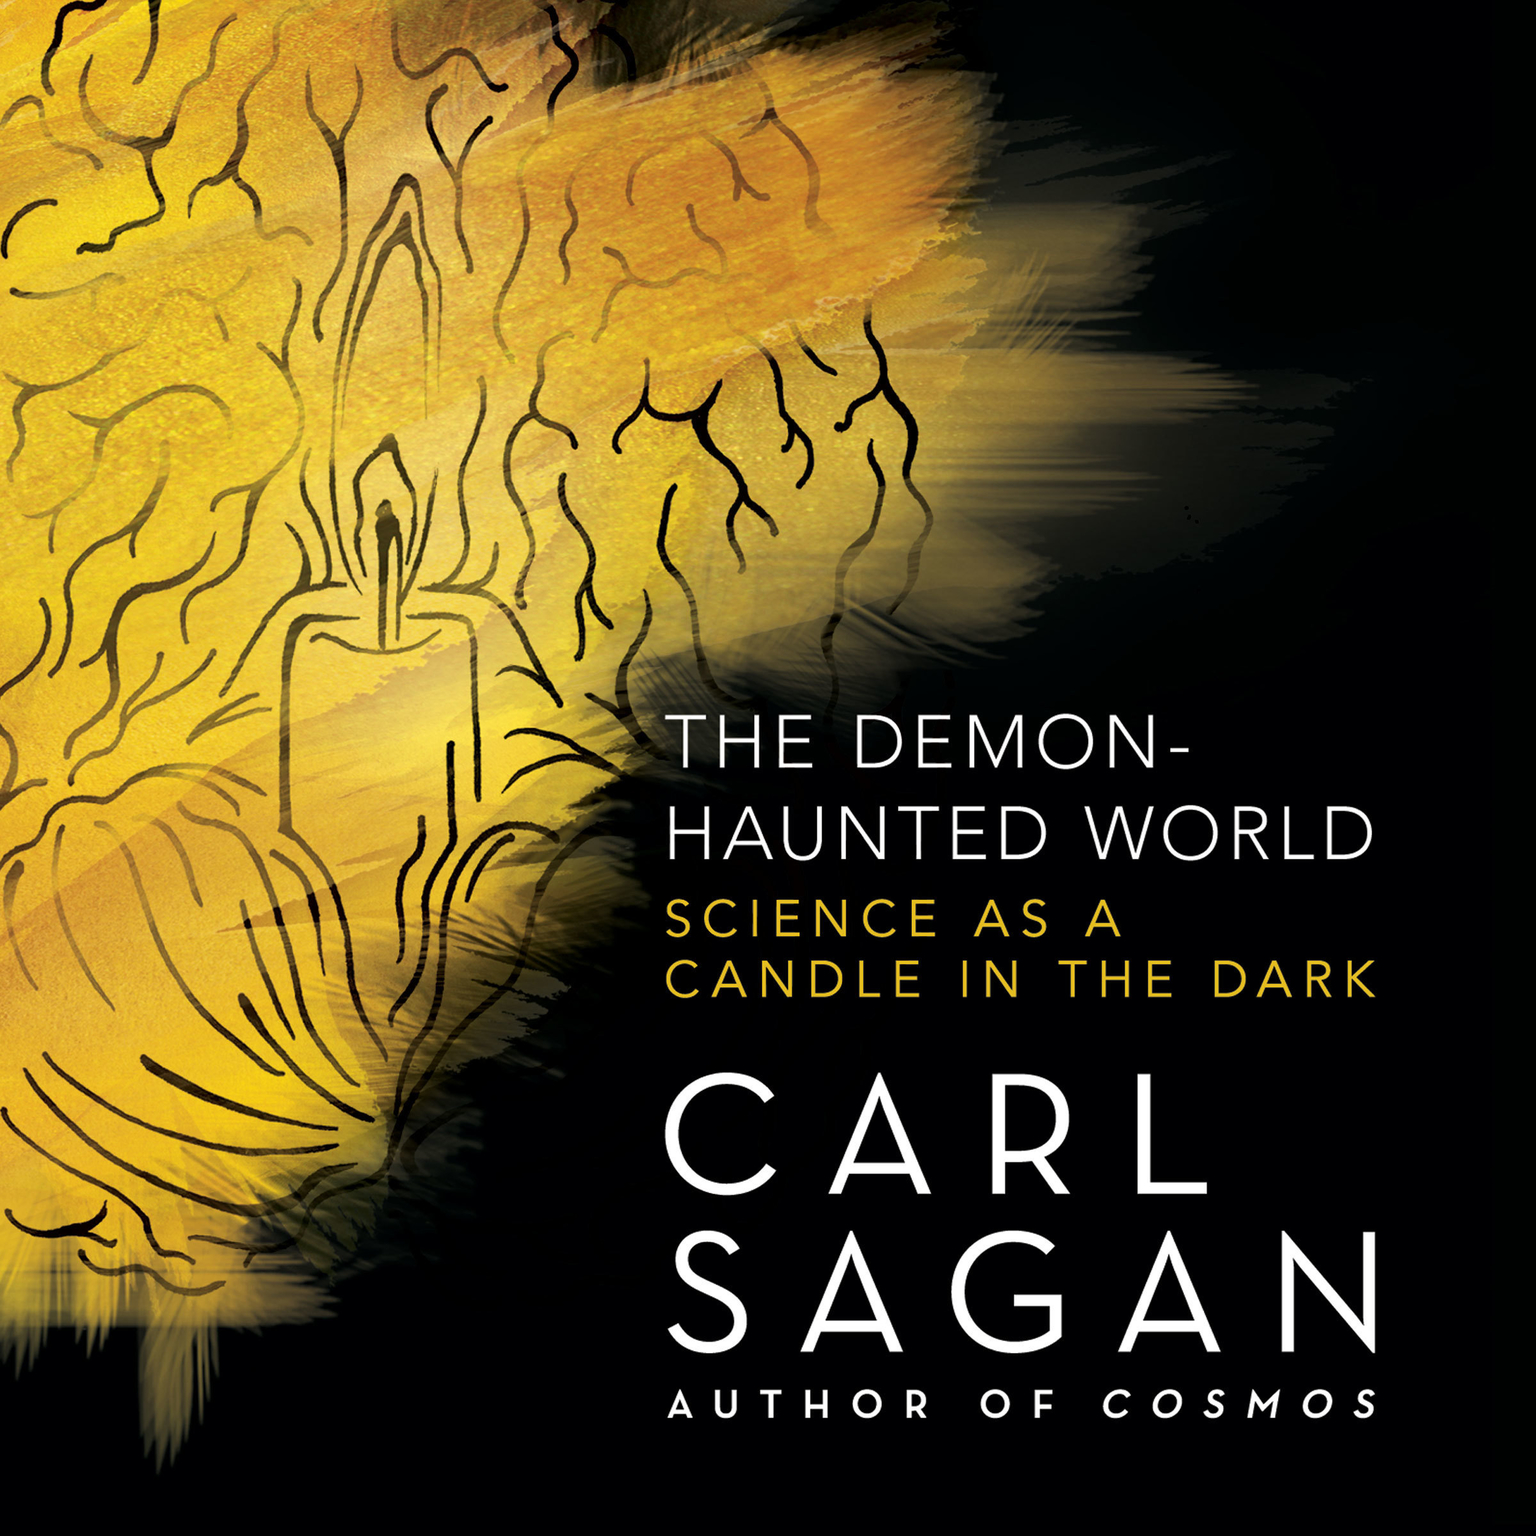 an analysis of the demon haunted world science as a candle in the dark by carl sagan